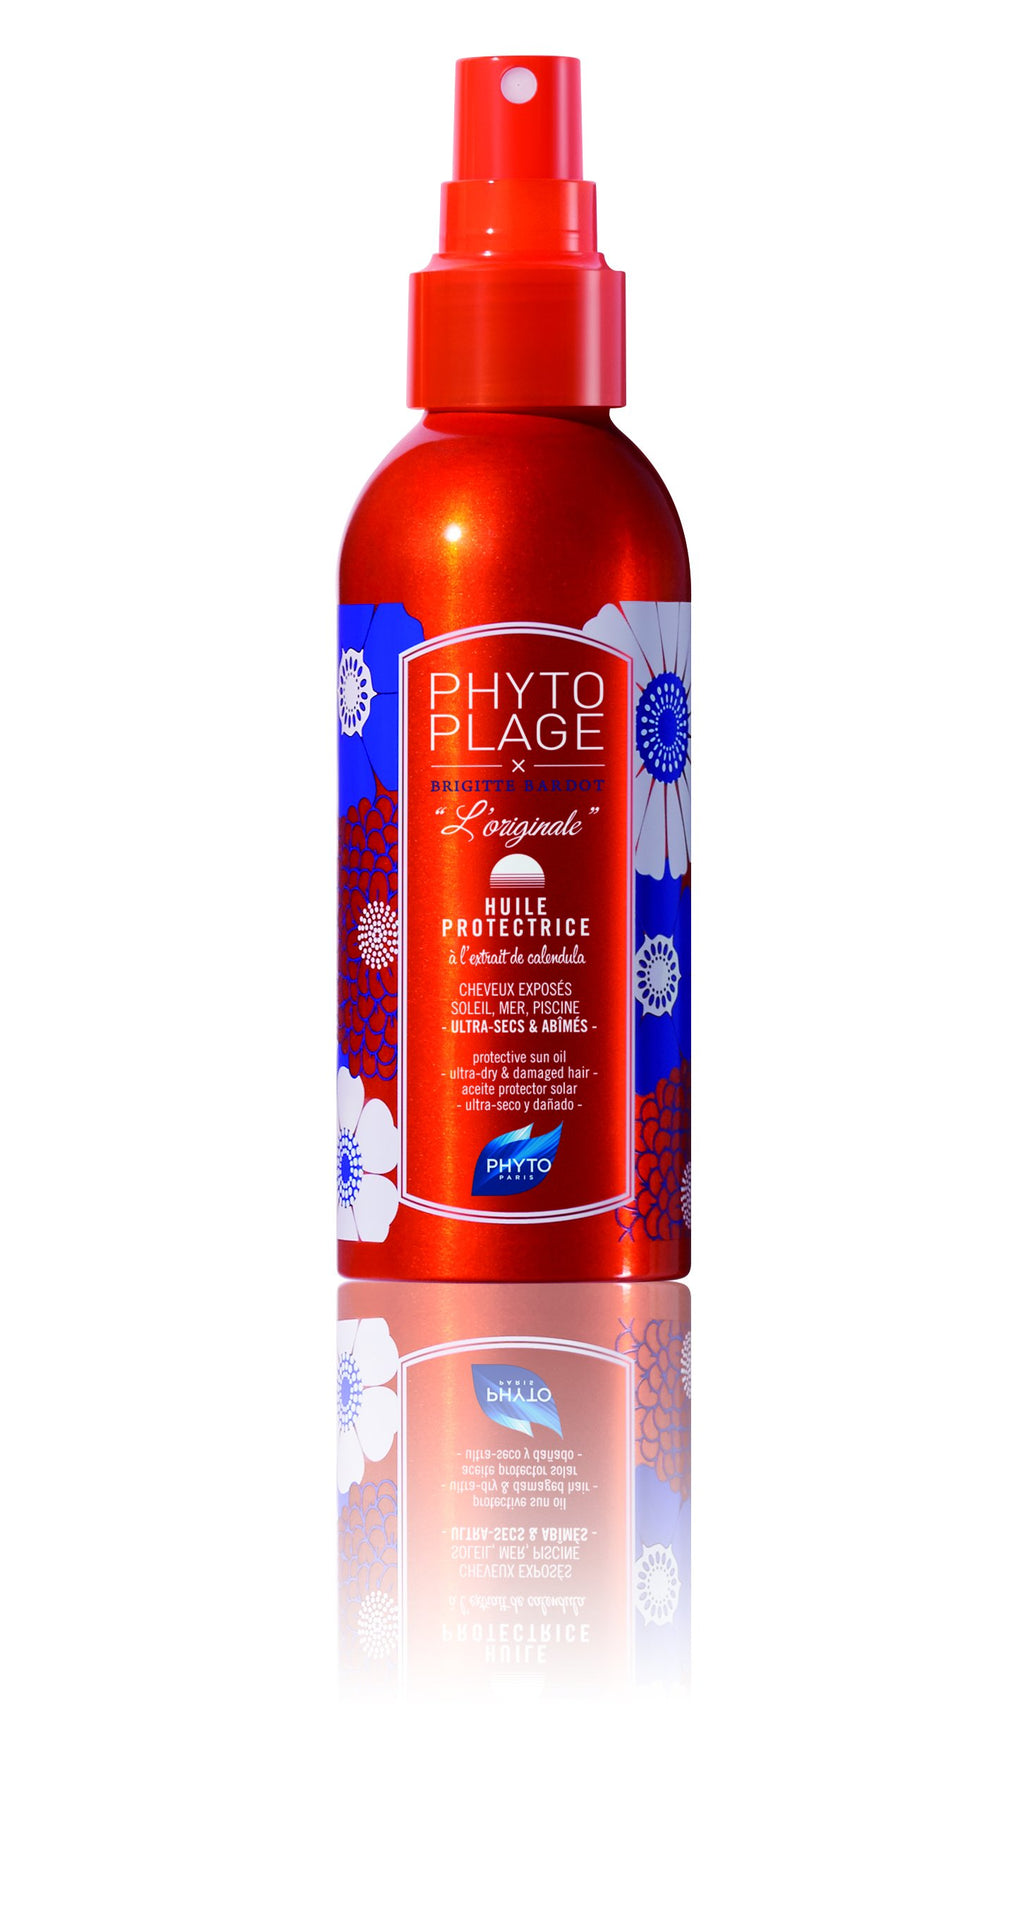 phyto-phytoplage-l-original-protective-hair-oil-cosmetics-online